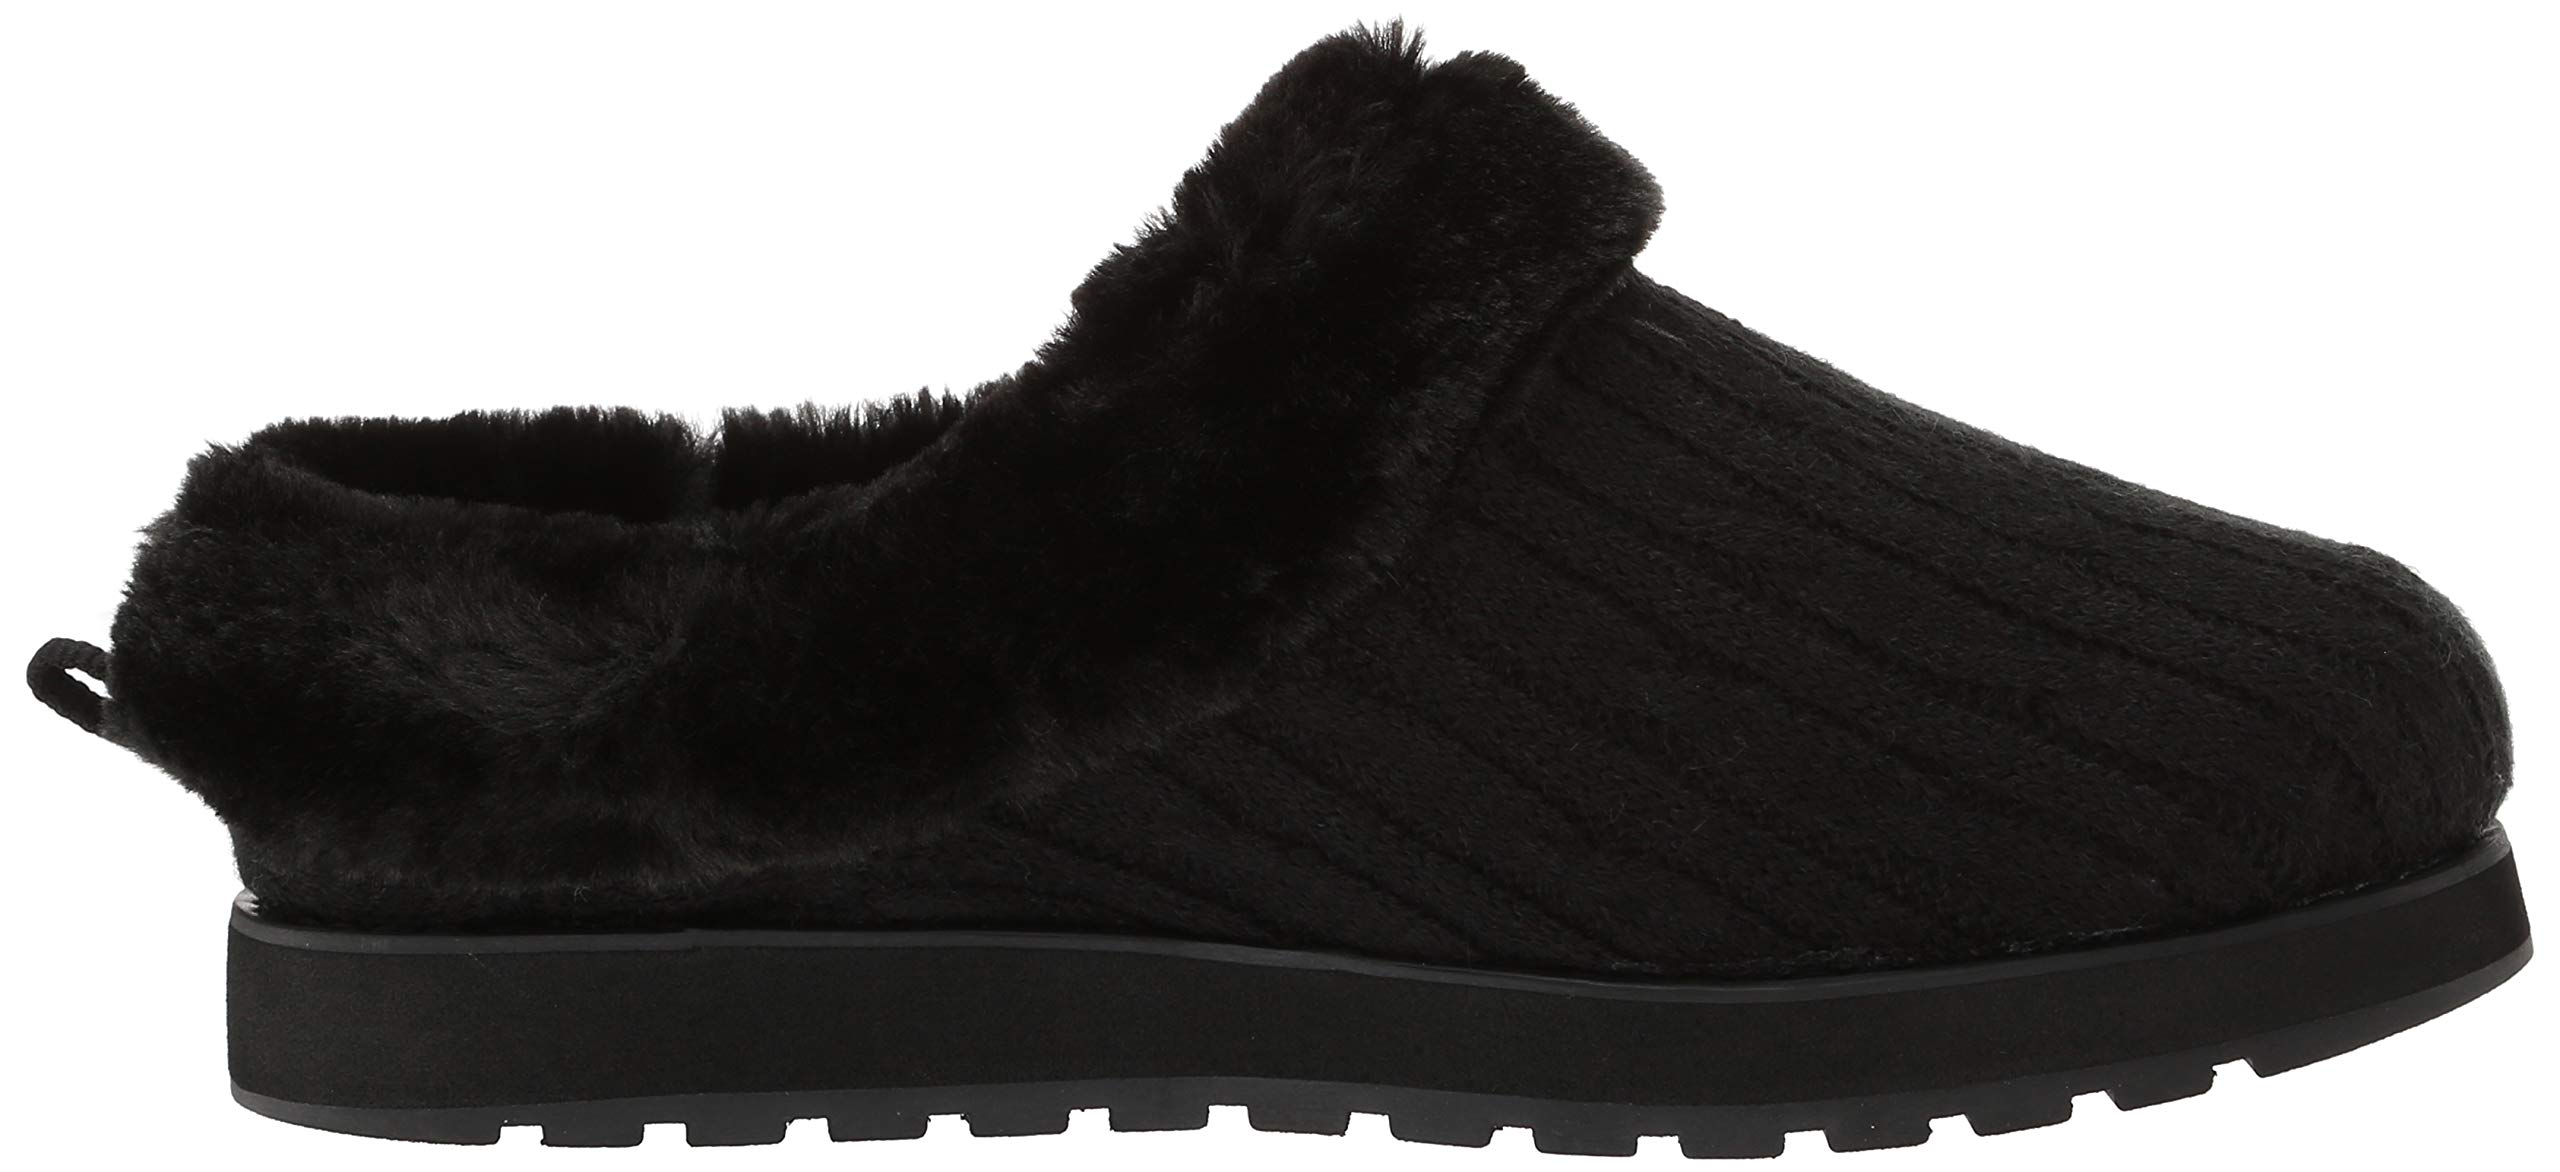 175c42a9e9d2 BOBS from Skechers Women s Keepsakes Ice Angel Slipper - -   Mules   Clogs    Clothing